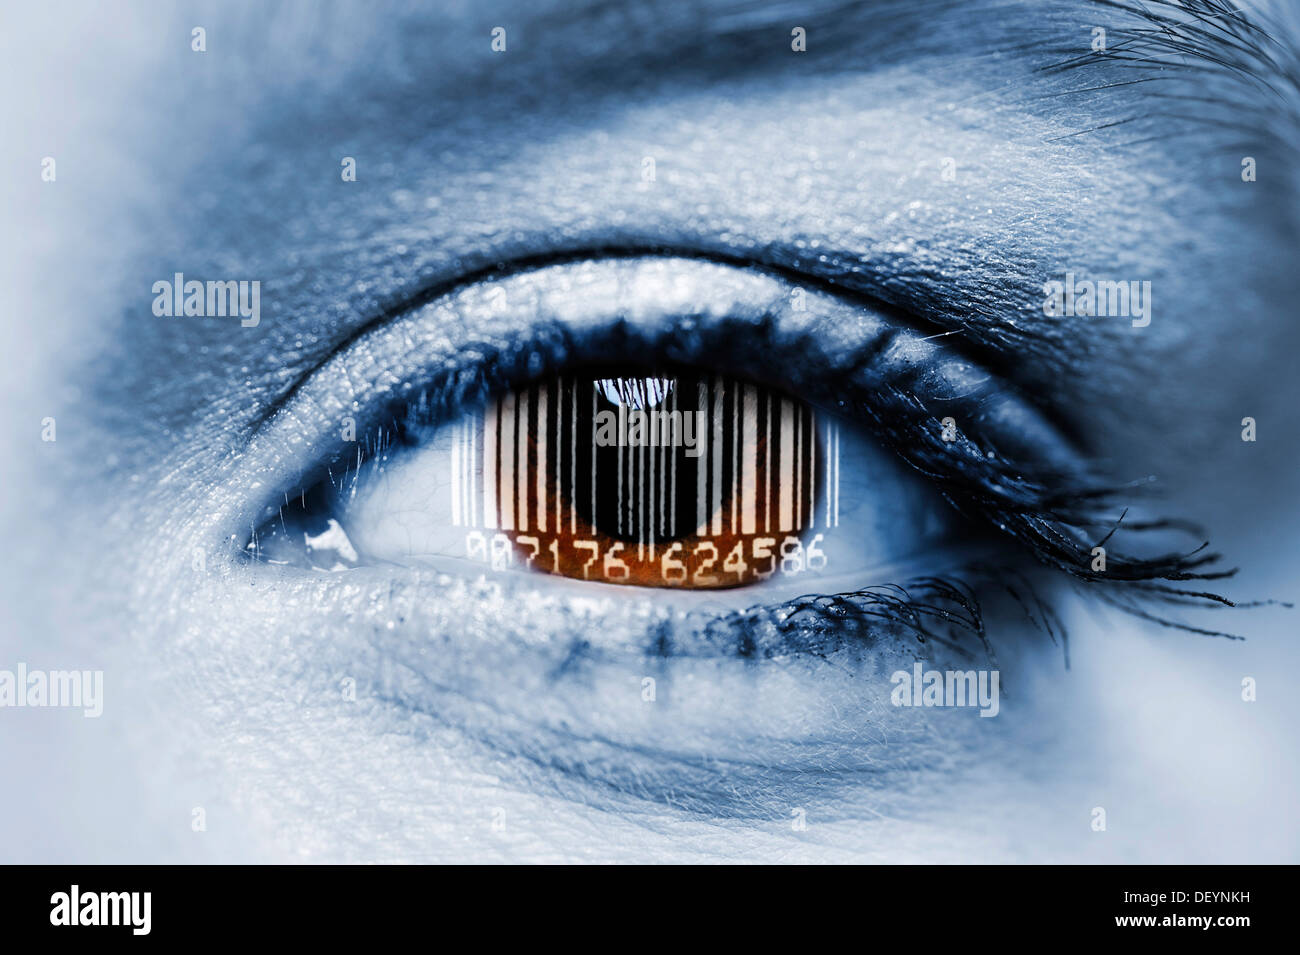 Woman's eye with a bar code, symbolic image for population census - Stock Image